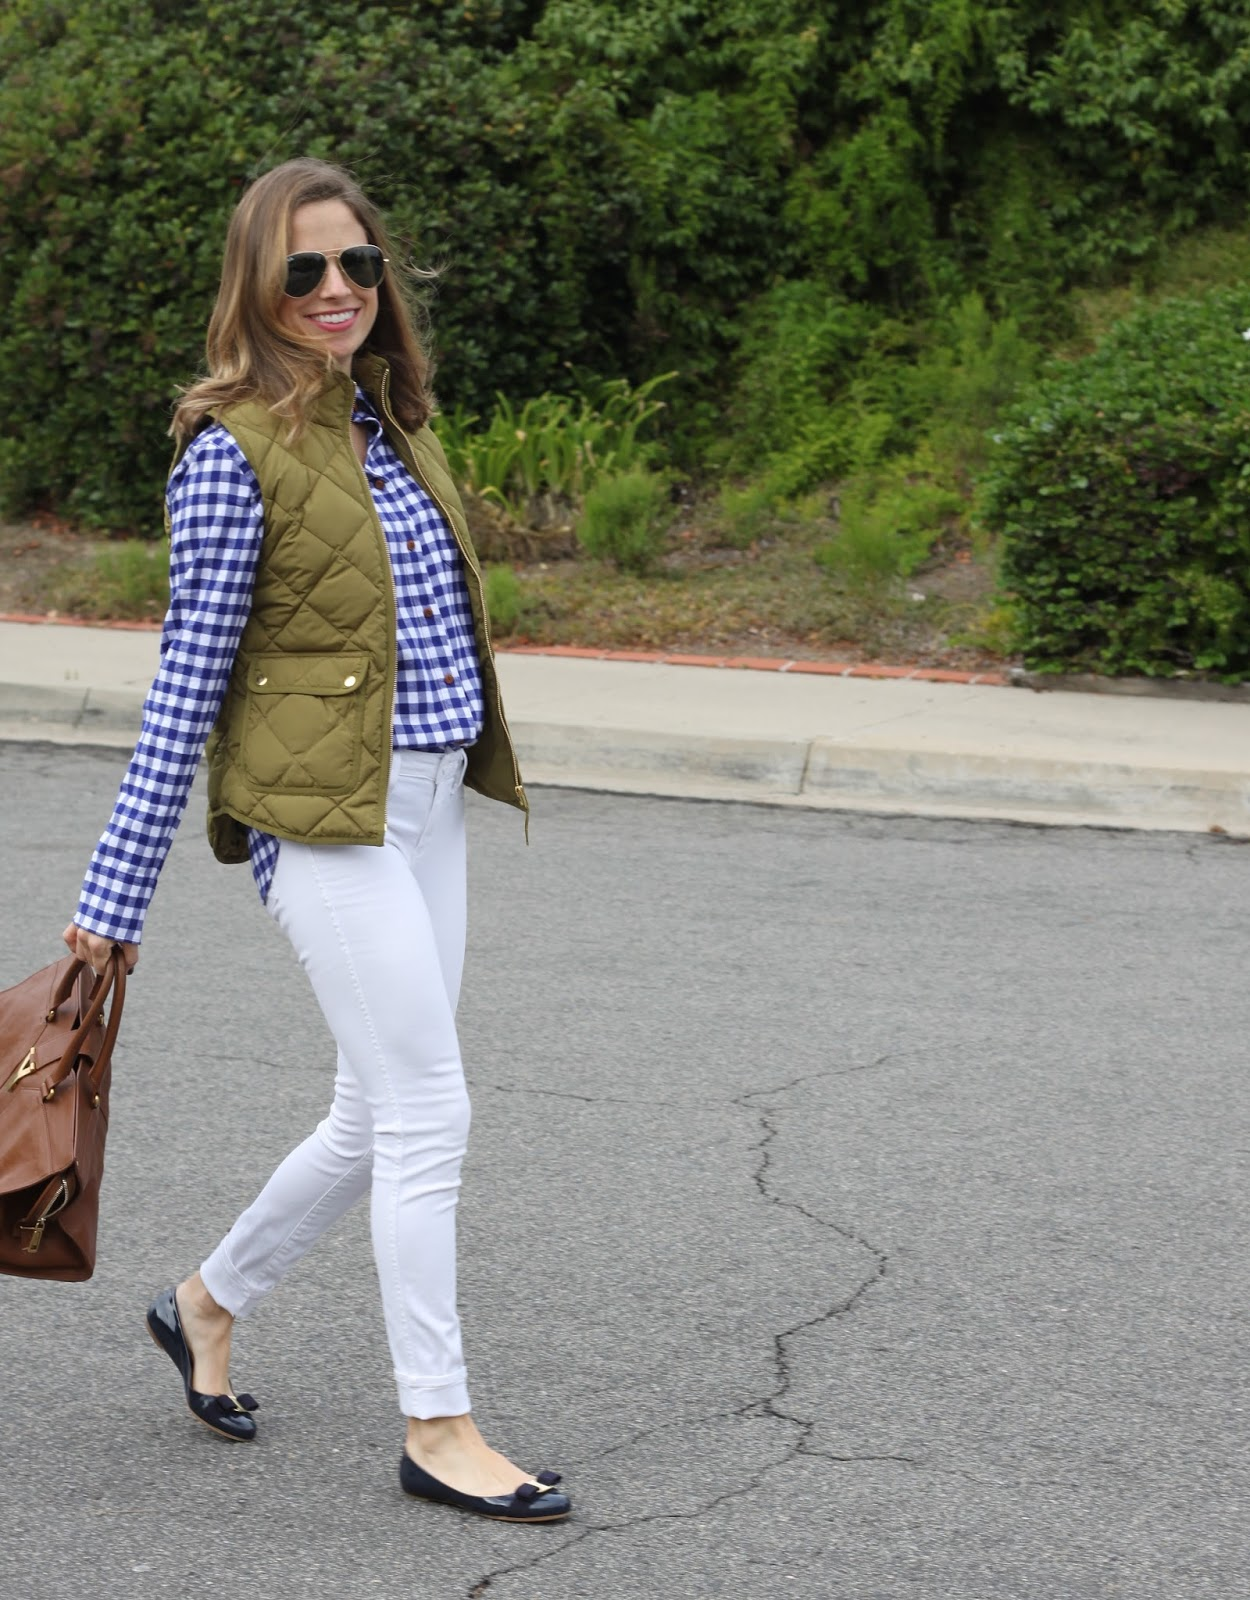 gingham shirt and white skinny jeans